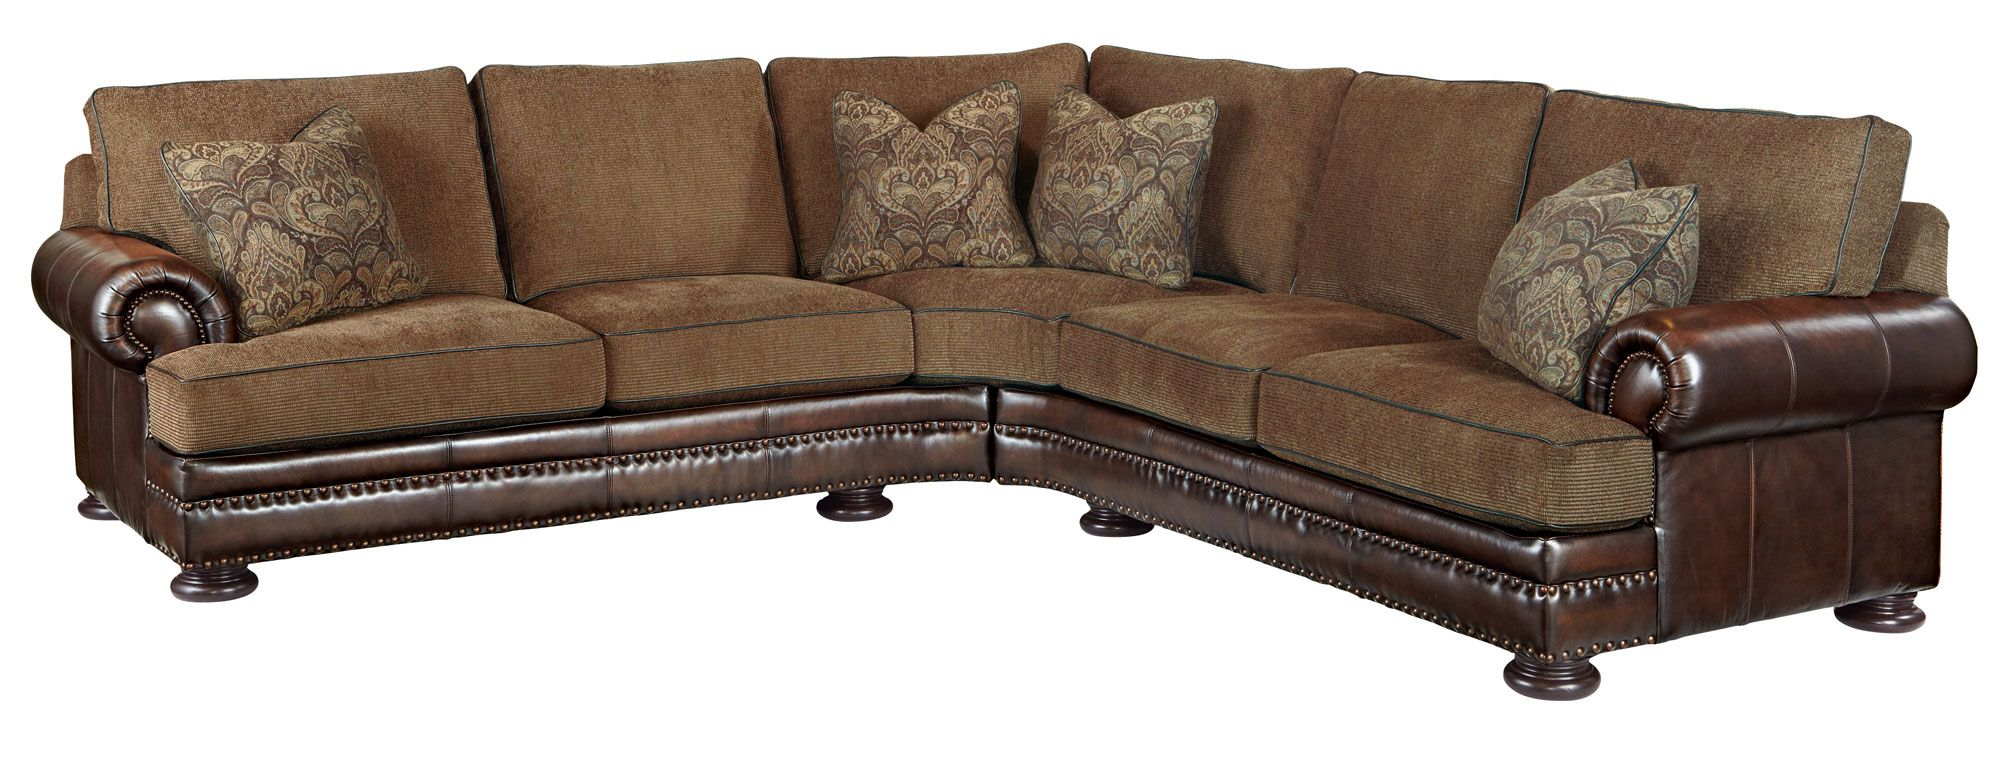 Traditional Sectional L Shaped Sofa Design Ideas For Living Room